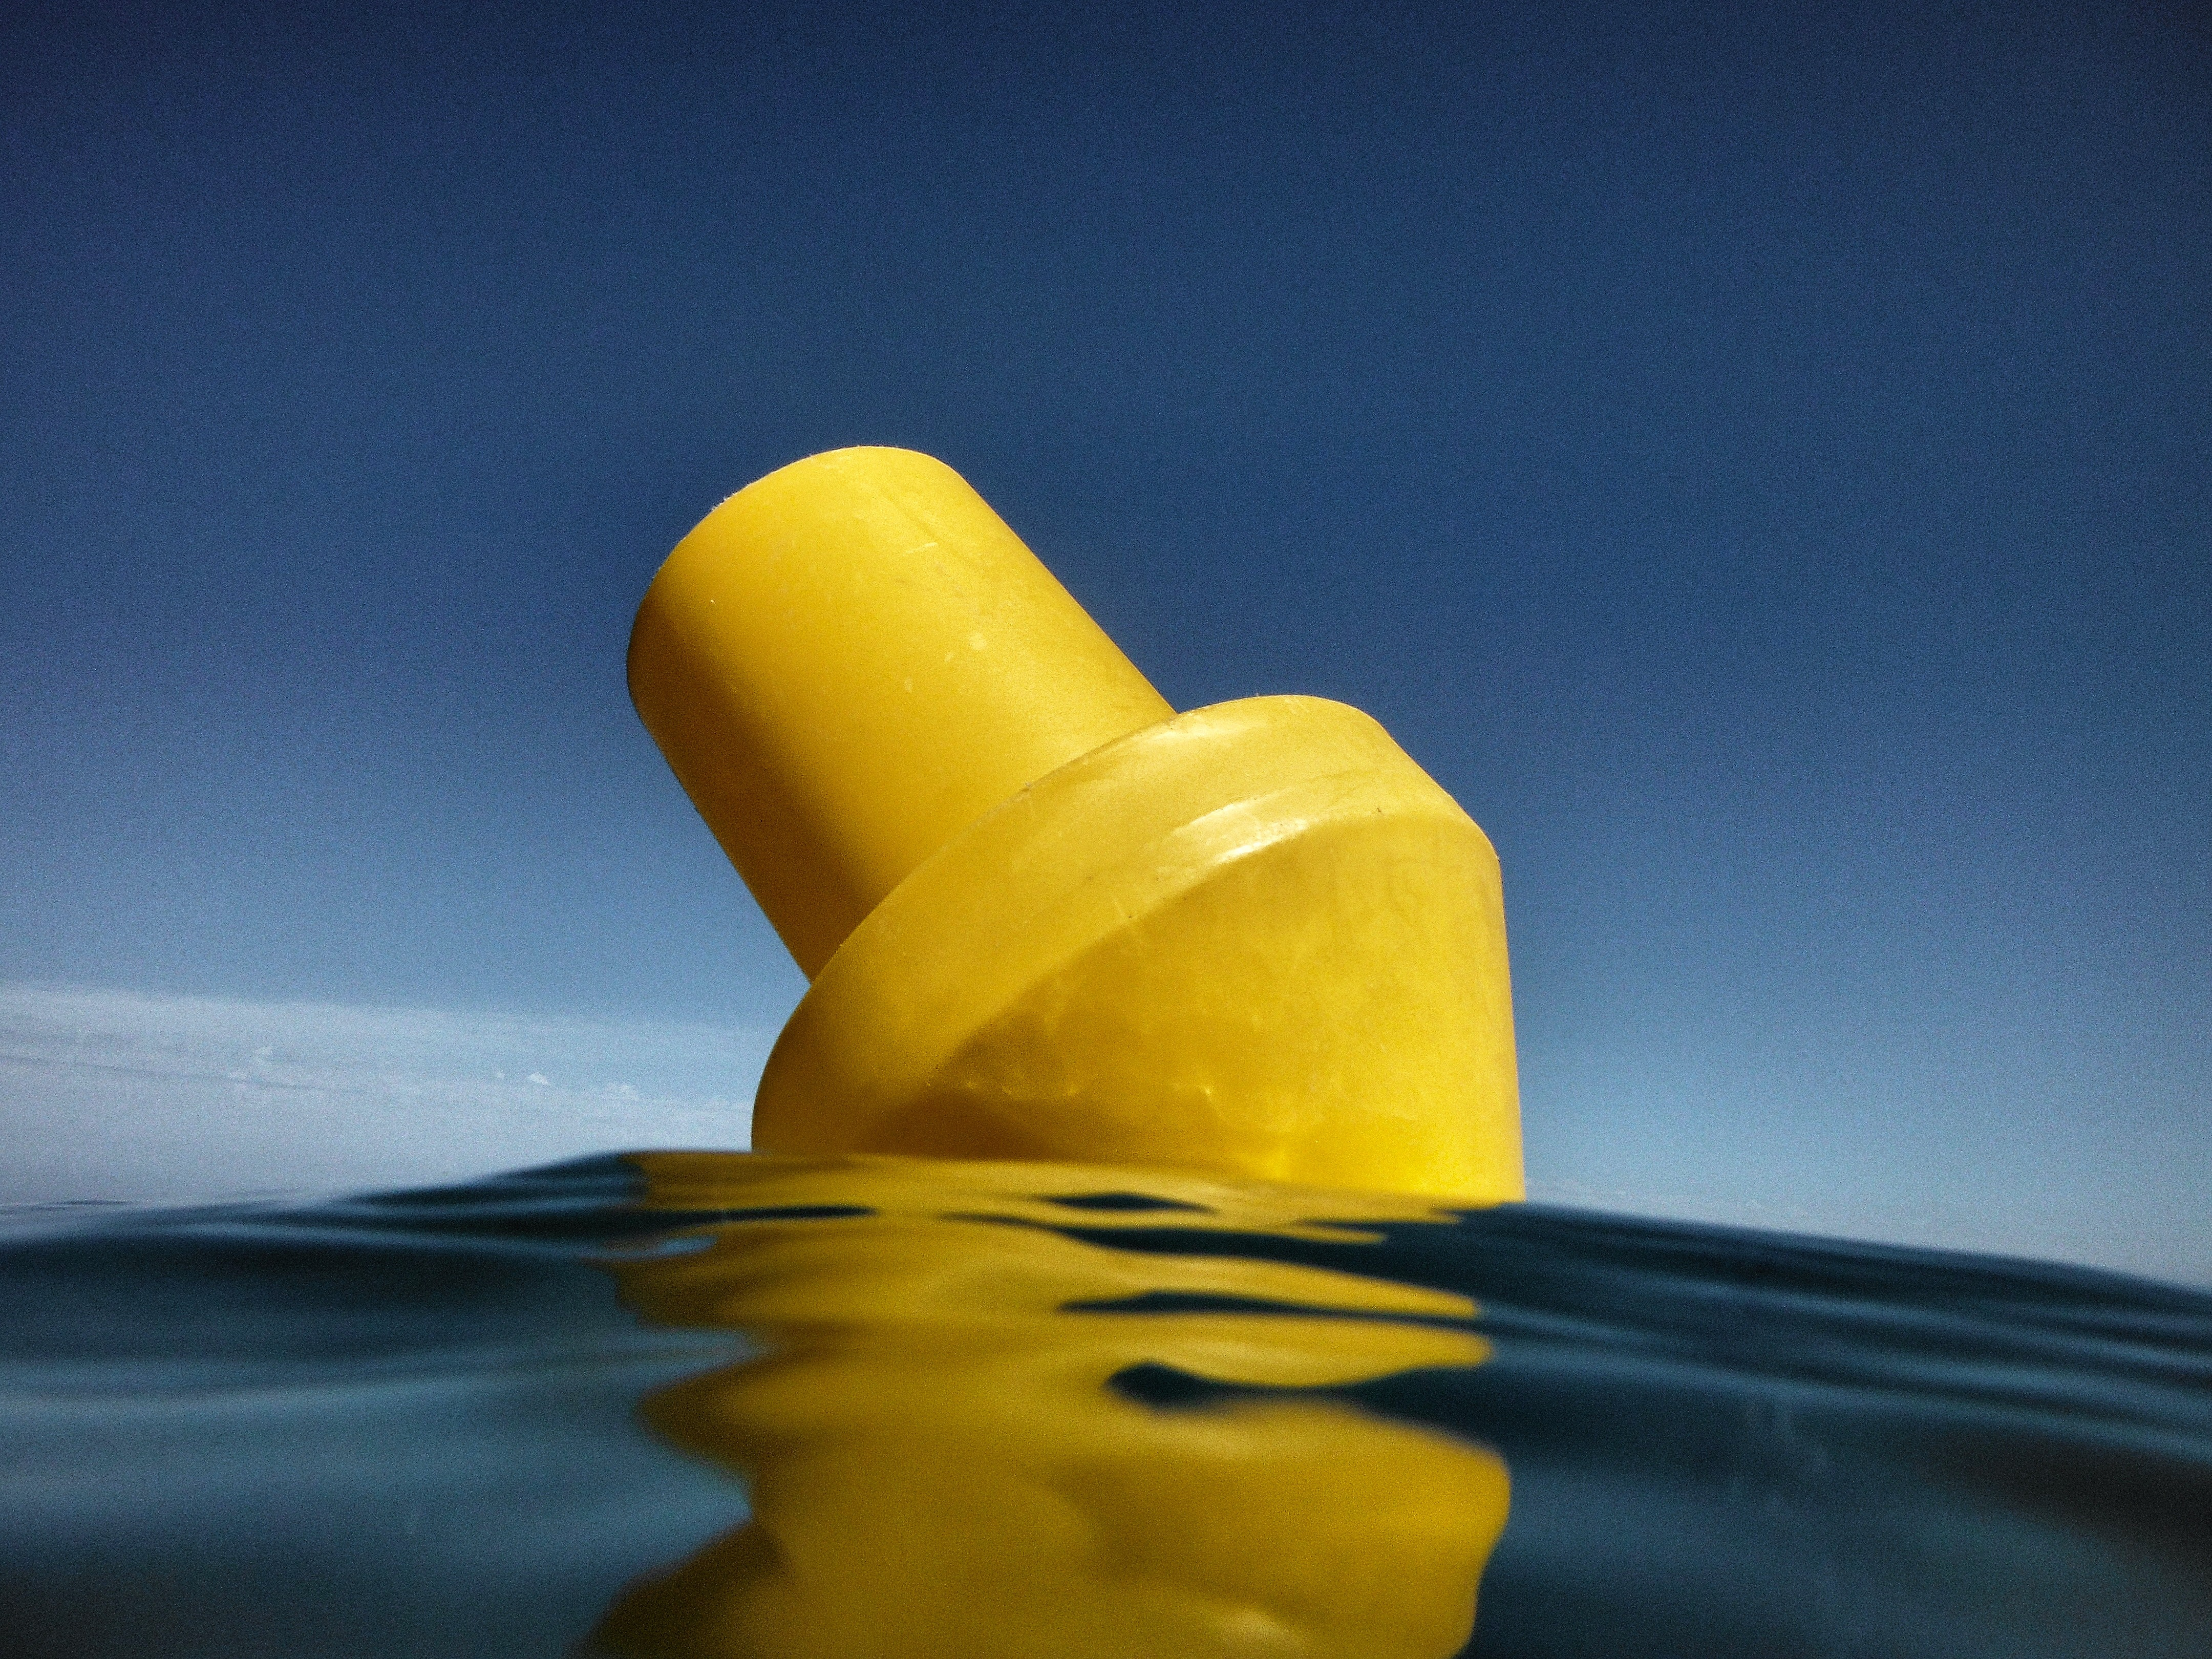 yellow plastic part floating on body of water during daytime